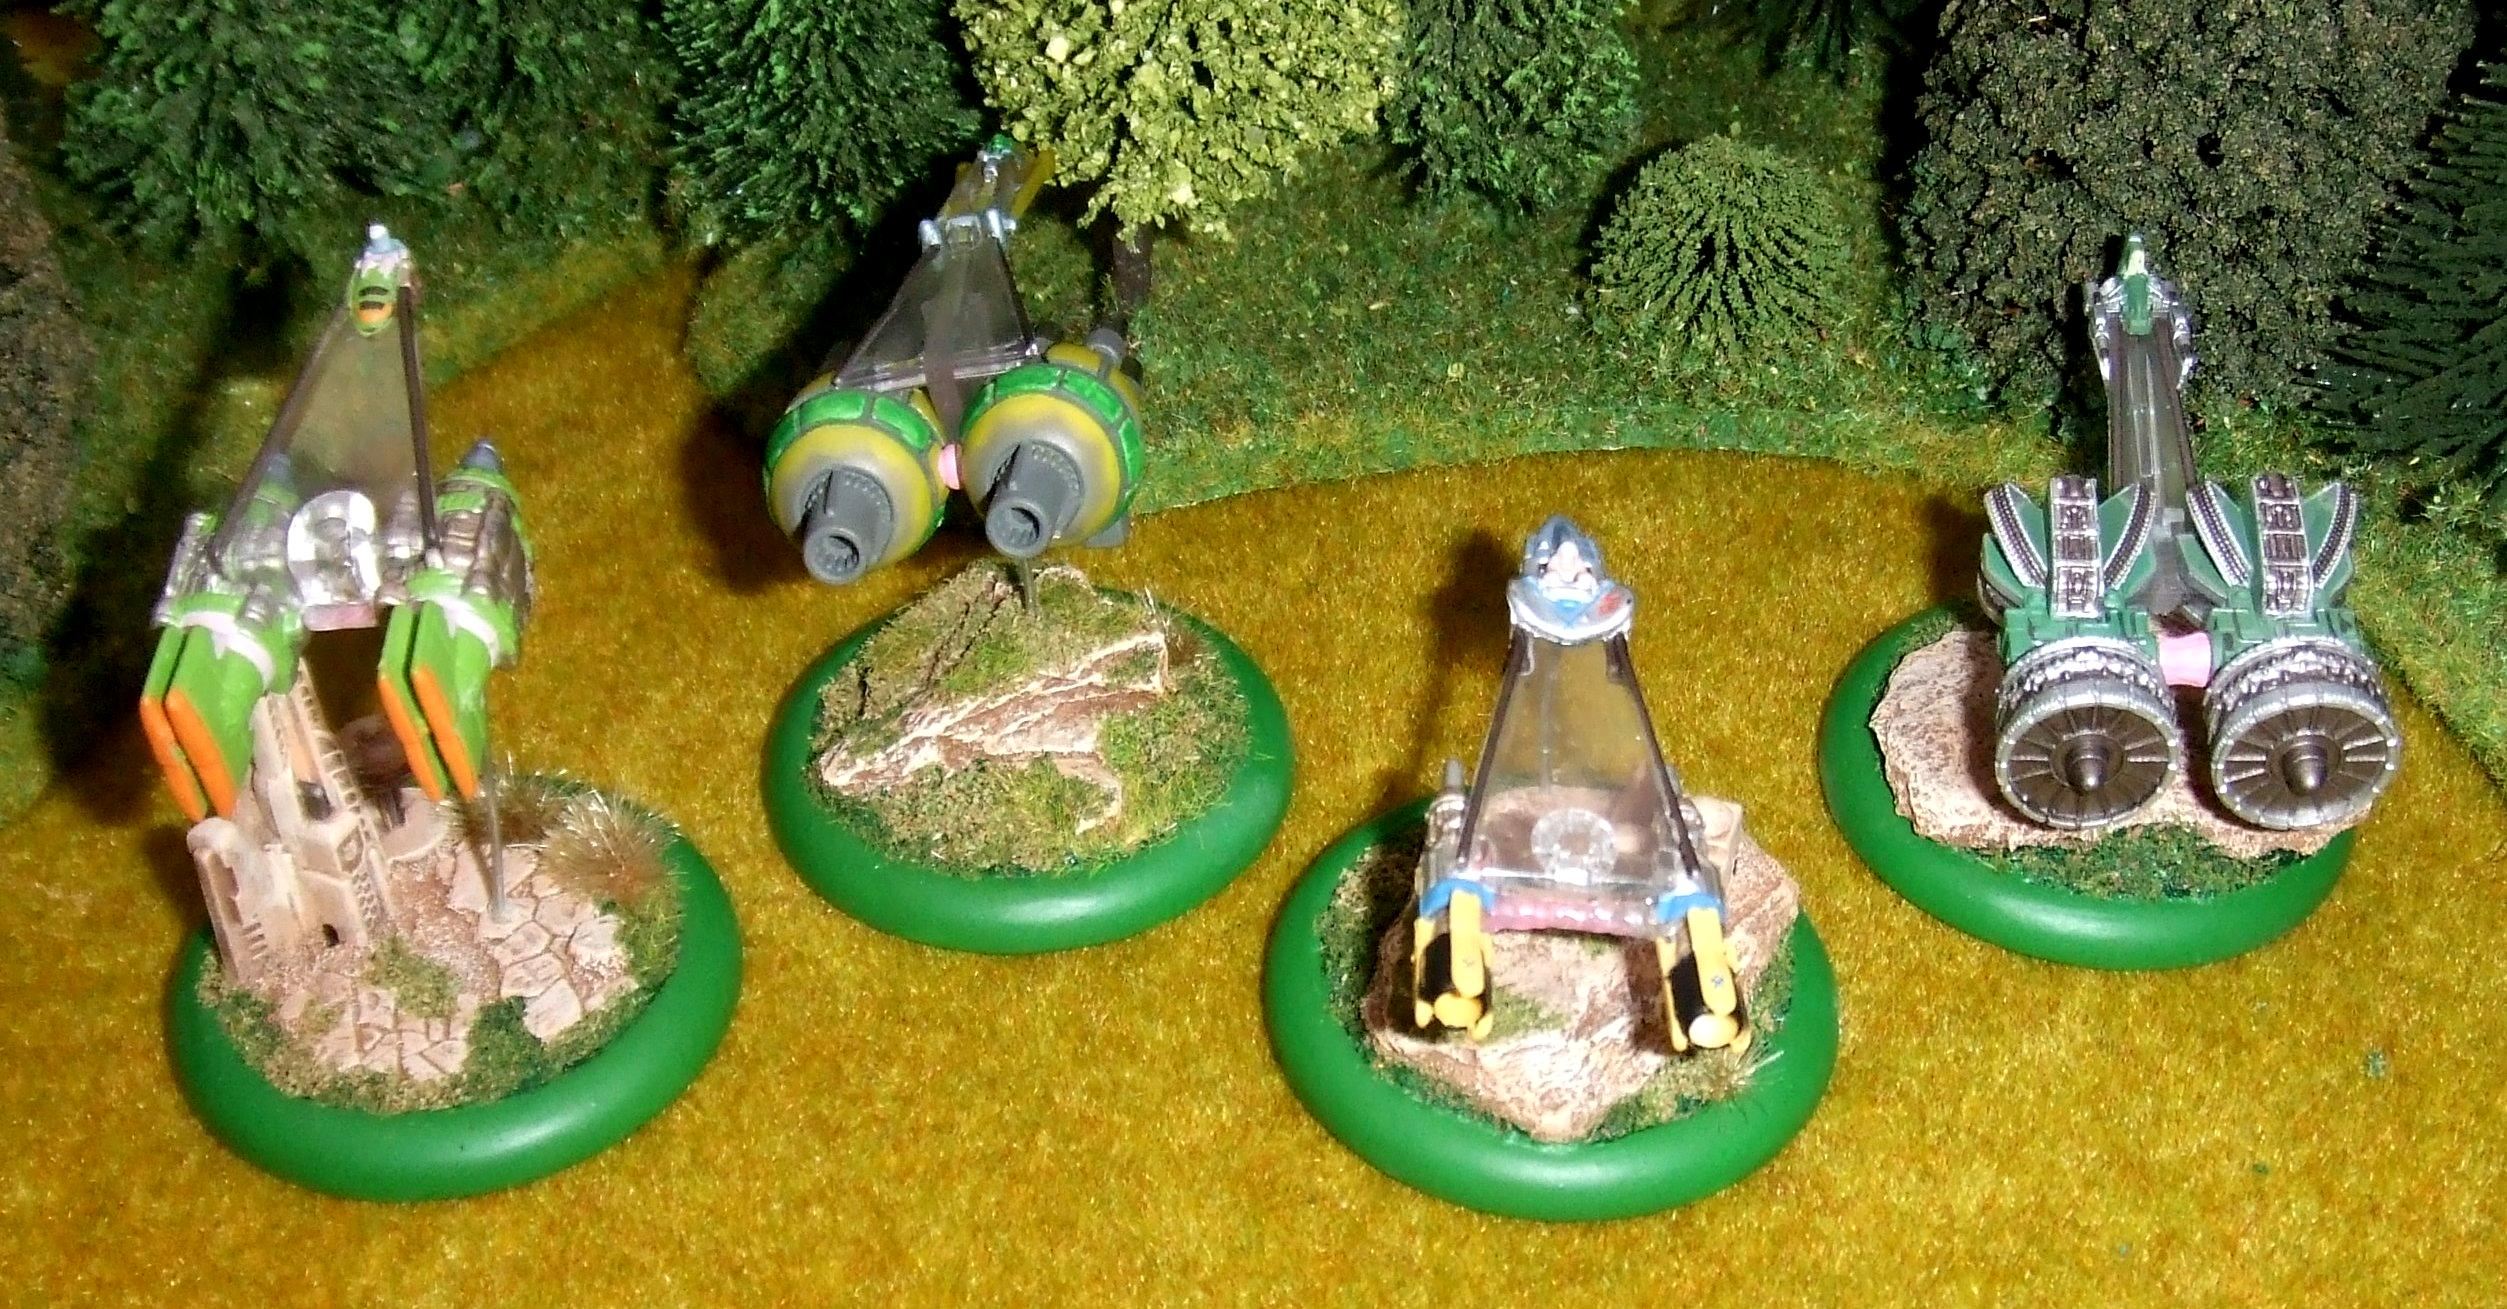 28mm, 35mm, Ds Bases, Dungeon, Hand Cast, Hordes, Naboo, New, Pod Race, Pod Racer, Pod Racing, Podrace, Rare, Resin, Roleplay, Rpg, Science-fiction, Spin Out, Spin-out, Star Wars, Starwars, Tabletop Gaming, Wargames Bakery, Wargamesbakery.co.uk, Warhammer Fantasy, Warmachine, Wgb